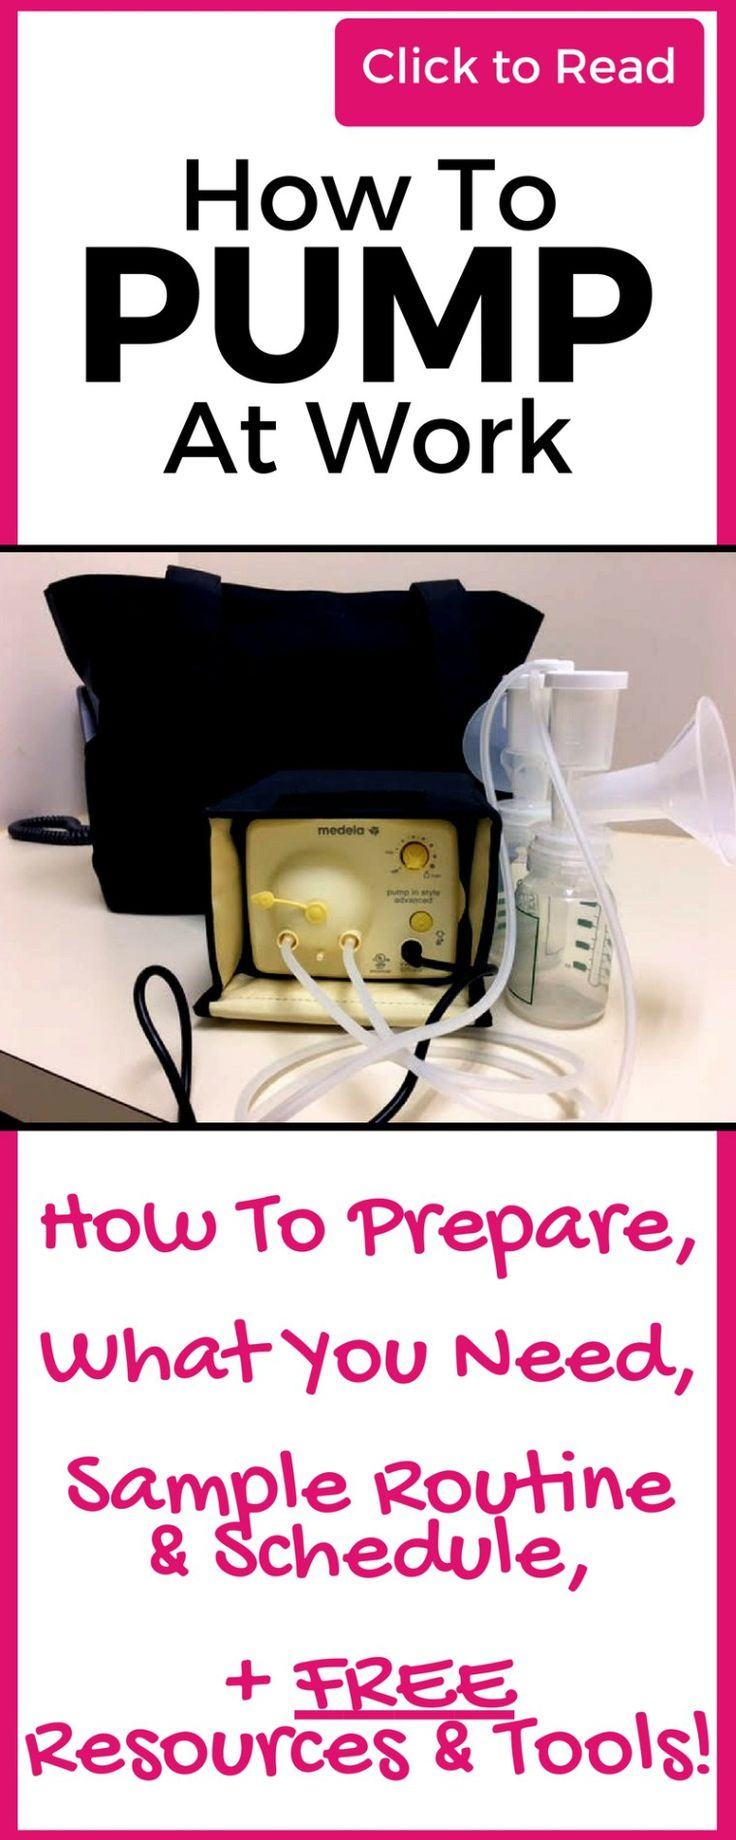 Everything you need to successfully pump at work! Read this while still on maternity leave so you can prepare! Covers Pumping schedule, Pumping milk, Pumping at work tips, Pumping at work schedule and Pumping at work essentials! Plus get some free downloadable resources & tools!